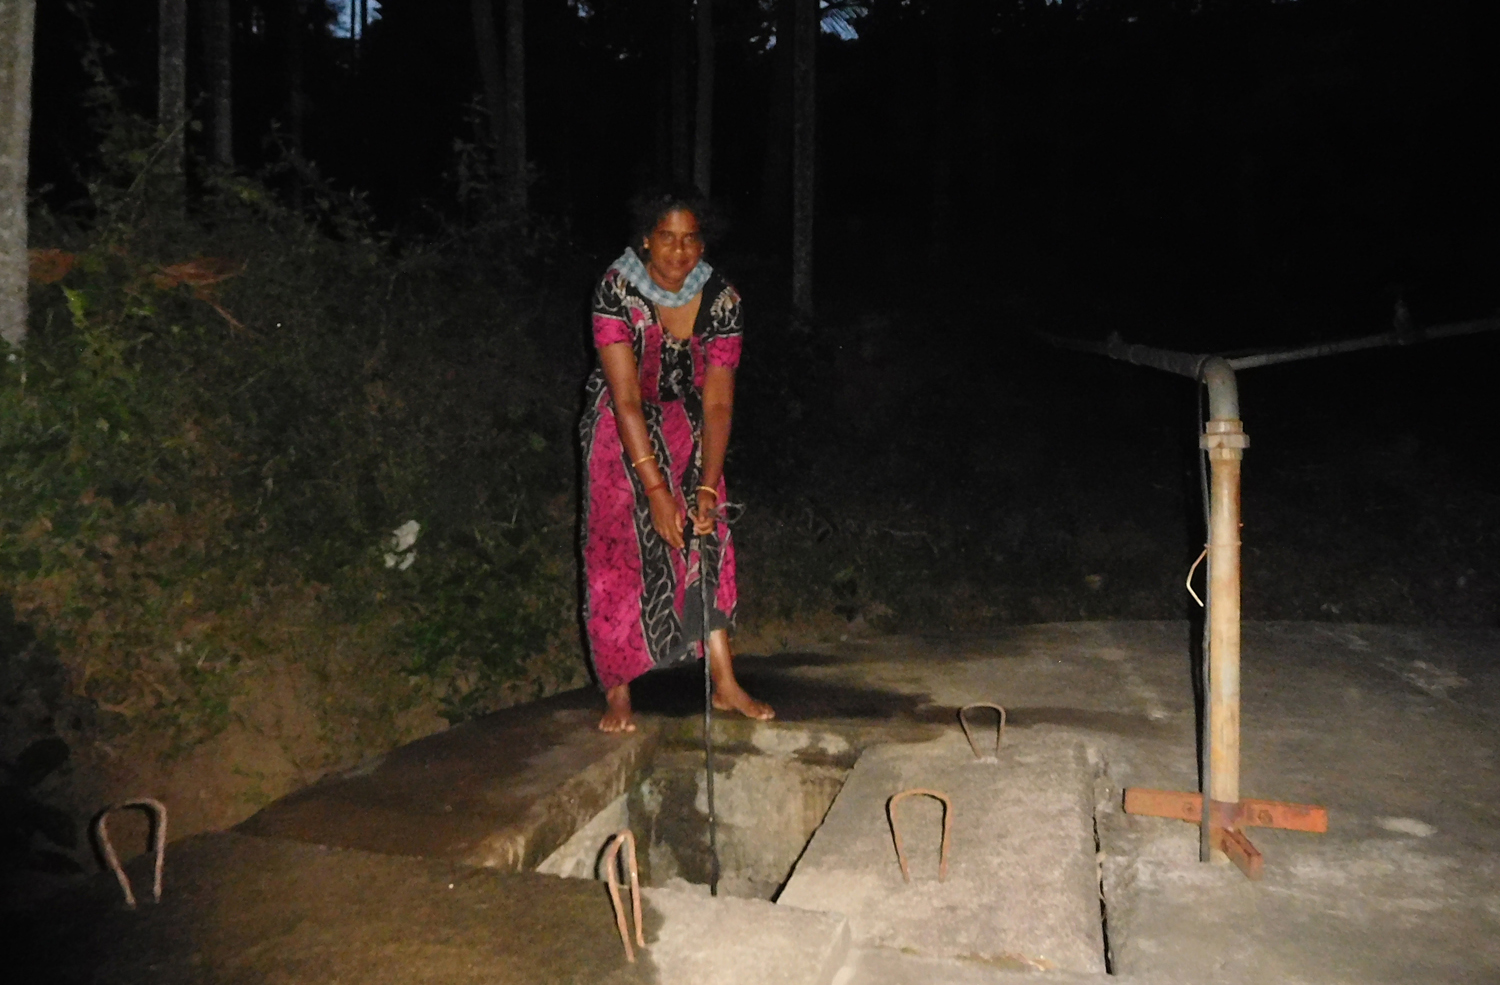 Bindu, a resident of Guddayoor, draws water from the public well at night.